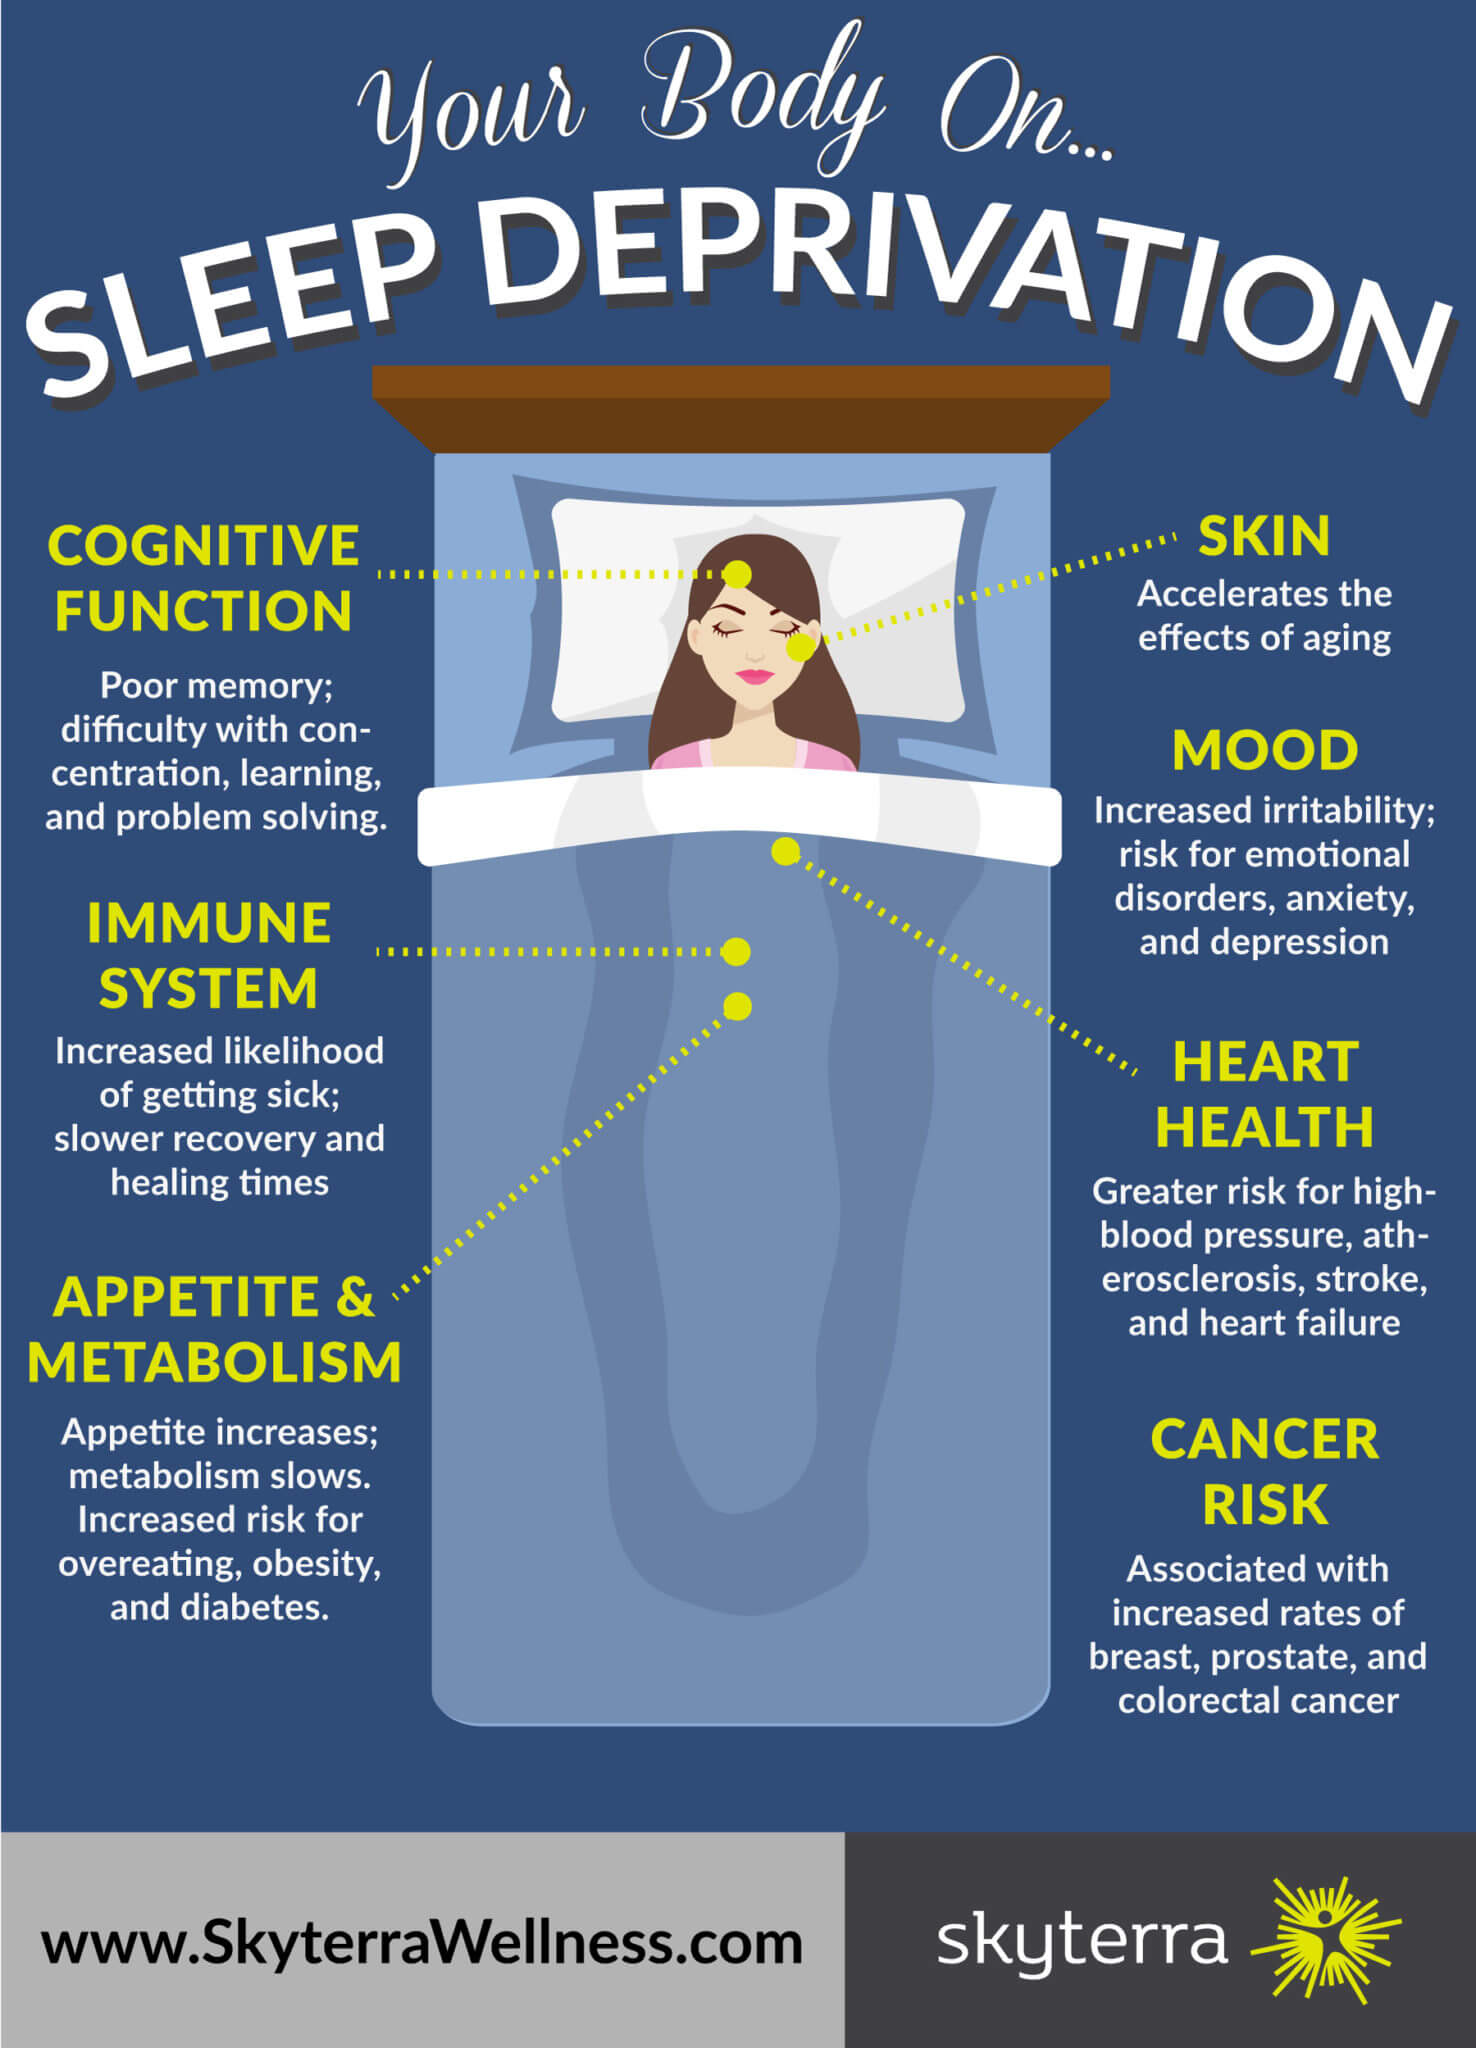 an analysis of effects of sleeping disorders Sleep is important for overall health, and inadequate sleep is associated with numerous health problems research shows that not getting enough sleep, or getting poor-quality sleep, increases the risk of high blood pressure, heart disease, obesity, and diabetes 2 , 4 , 5 , 6.